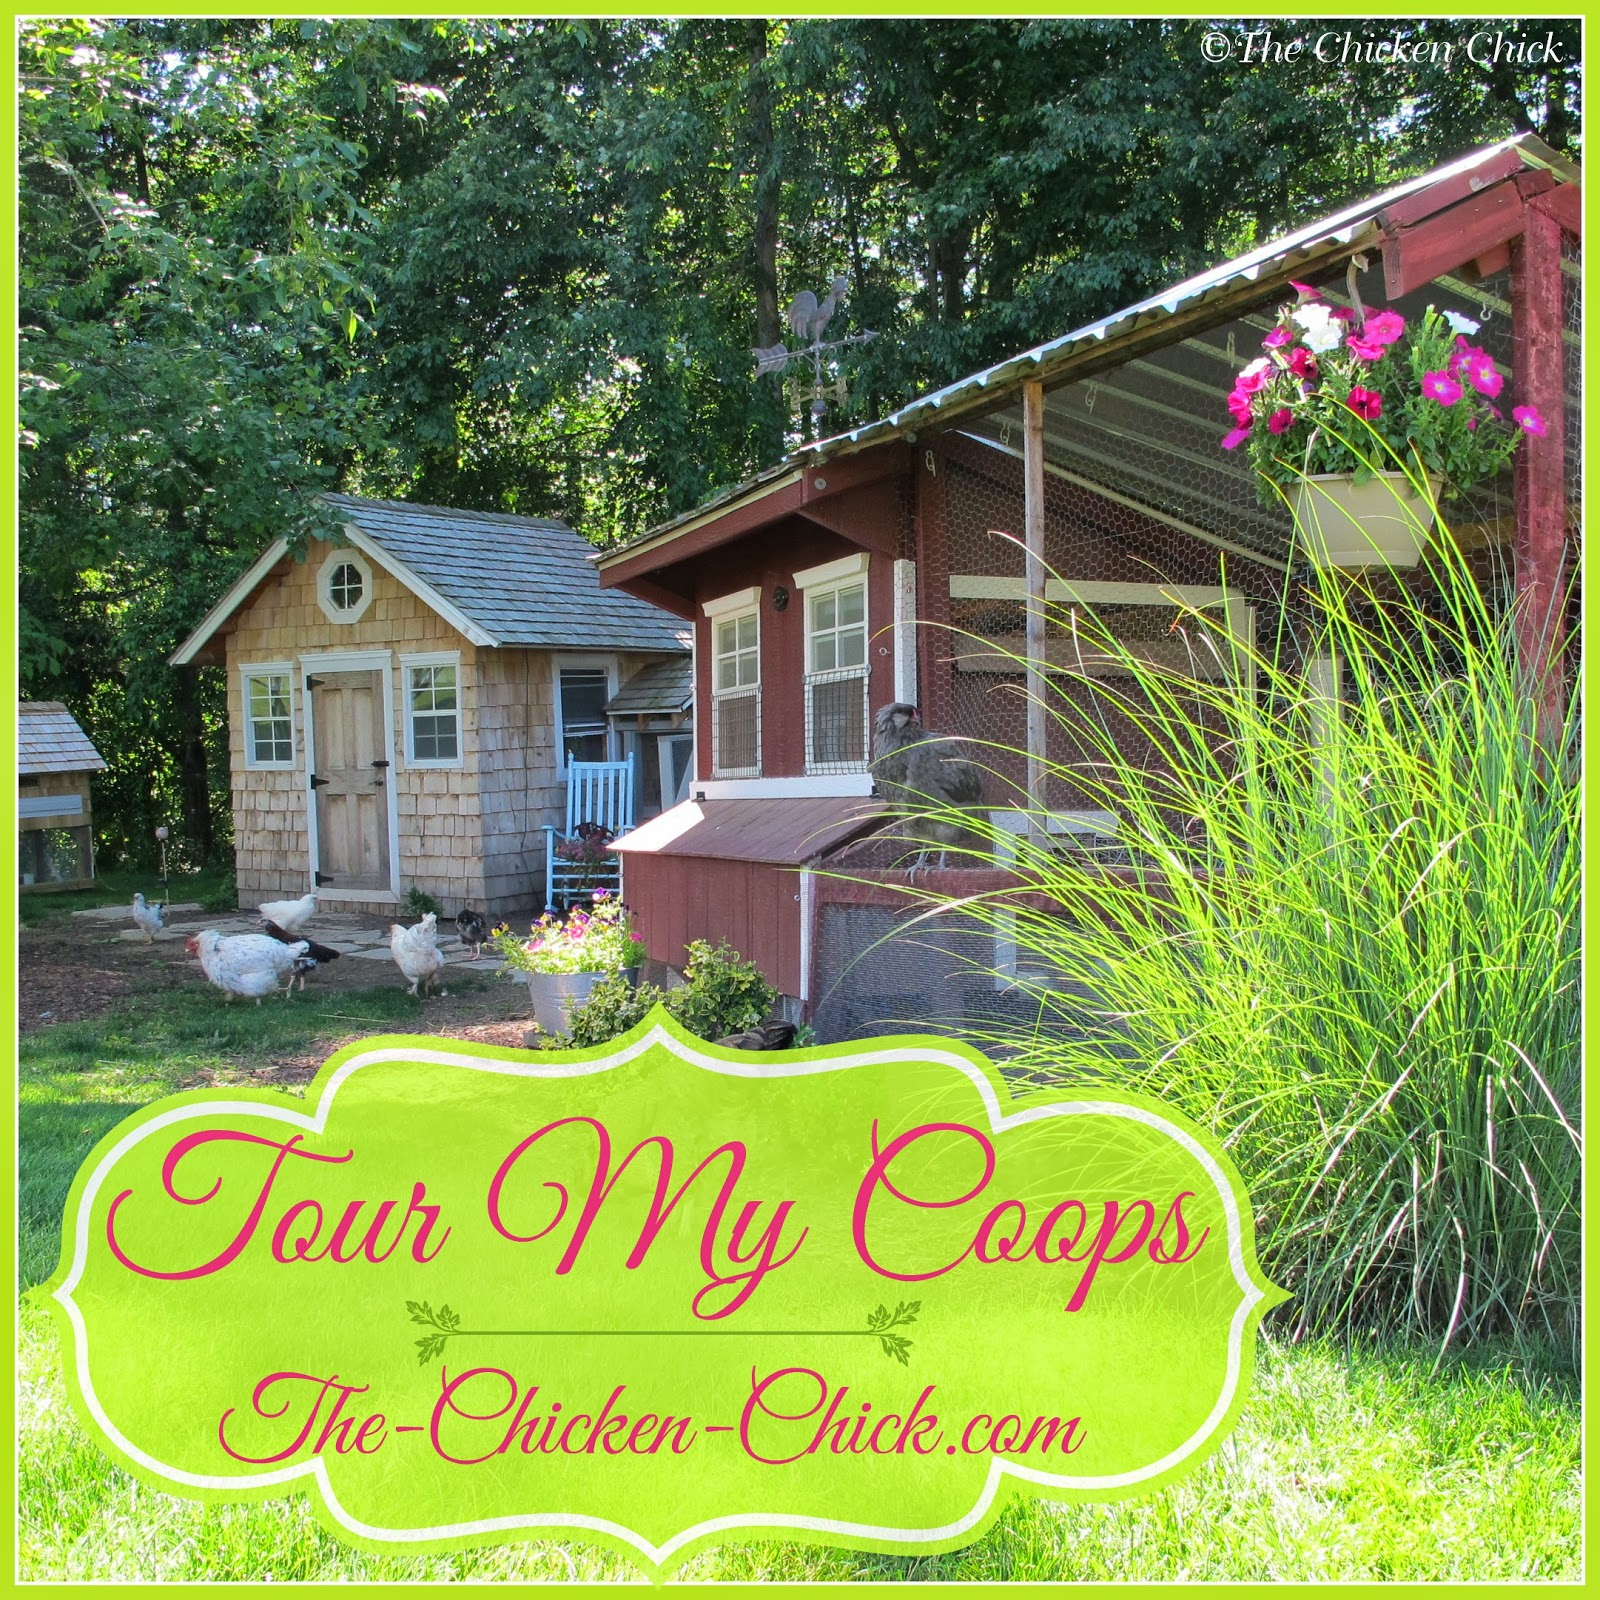 Tour my chicken coops as they have evolved over time